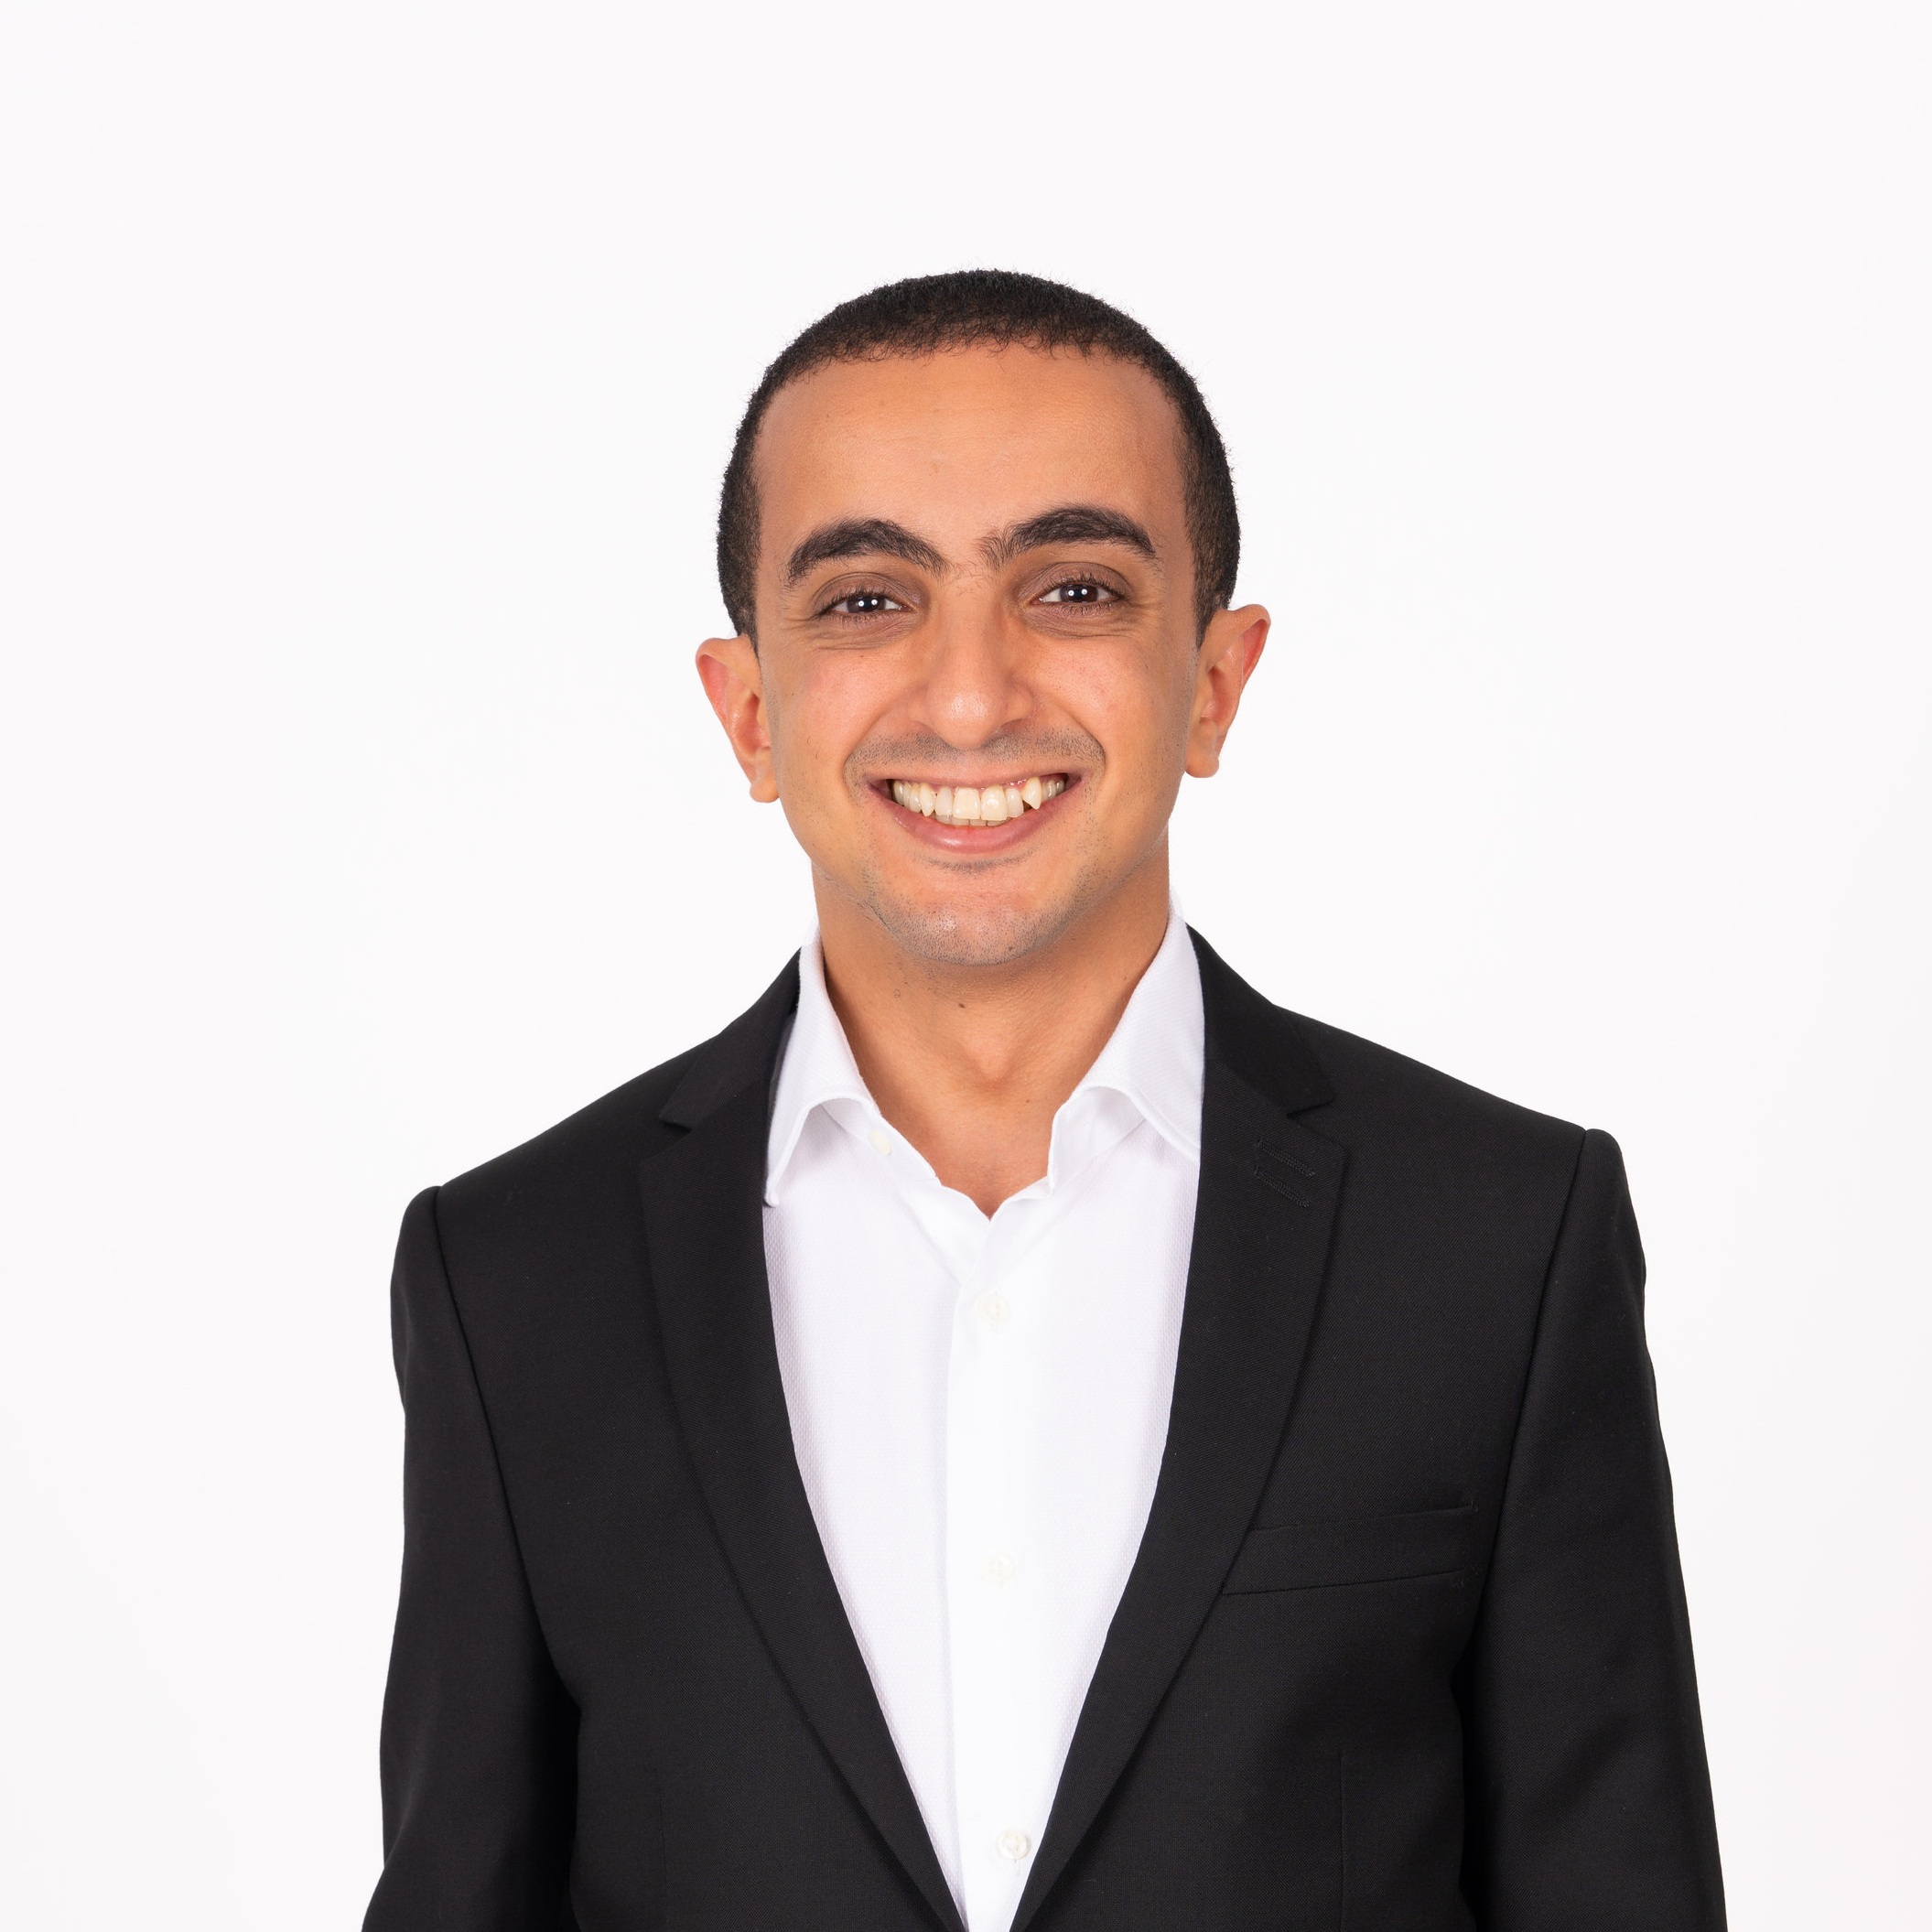 Hazim Al-Eryani   Hazim is an associate focusing on applying the Locus system to industries in developing countries and using the Locus platform to run economic analyses on local economies. He is looking forward to the day when he can analyze the economy of his home country, Yemen, using the Locus model.  Hazim graduated magna cum laude from Boston University with a degree in International Relations with a concentration in Middle Eastern Studies and Sustainable Development, and received a Master's degree from the Fletcher School at Tufts University with a concentration in Development Economics and International Business Relations. Prior to Locus, he worked with the International Crisis Group, Amnesty International, and the Atlantic Council.